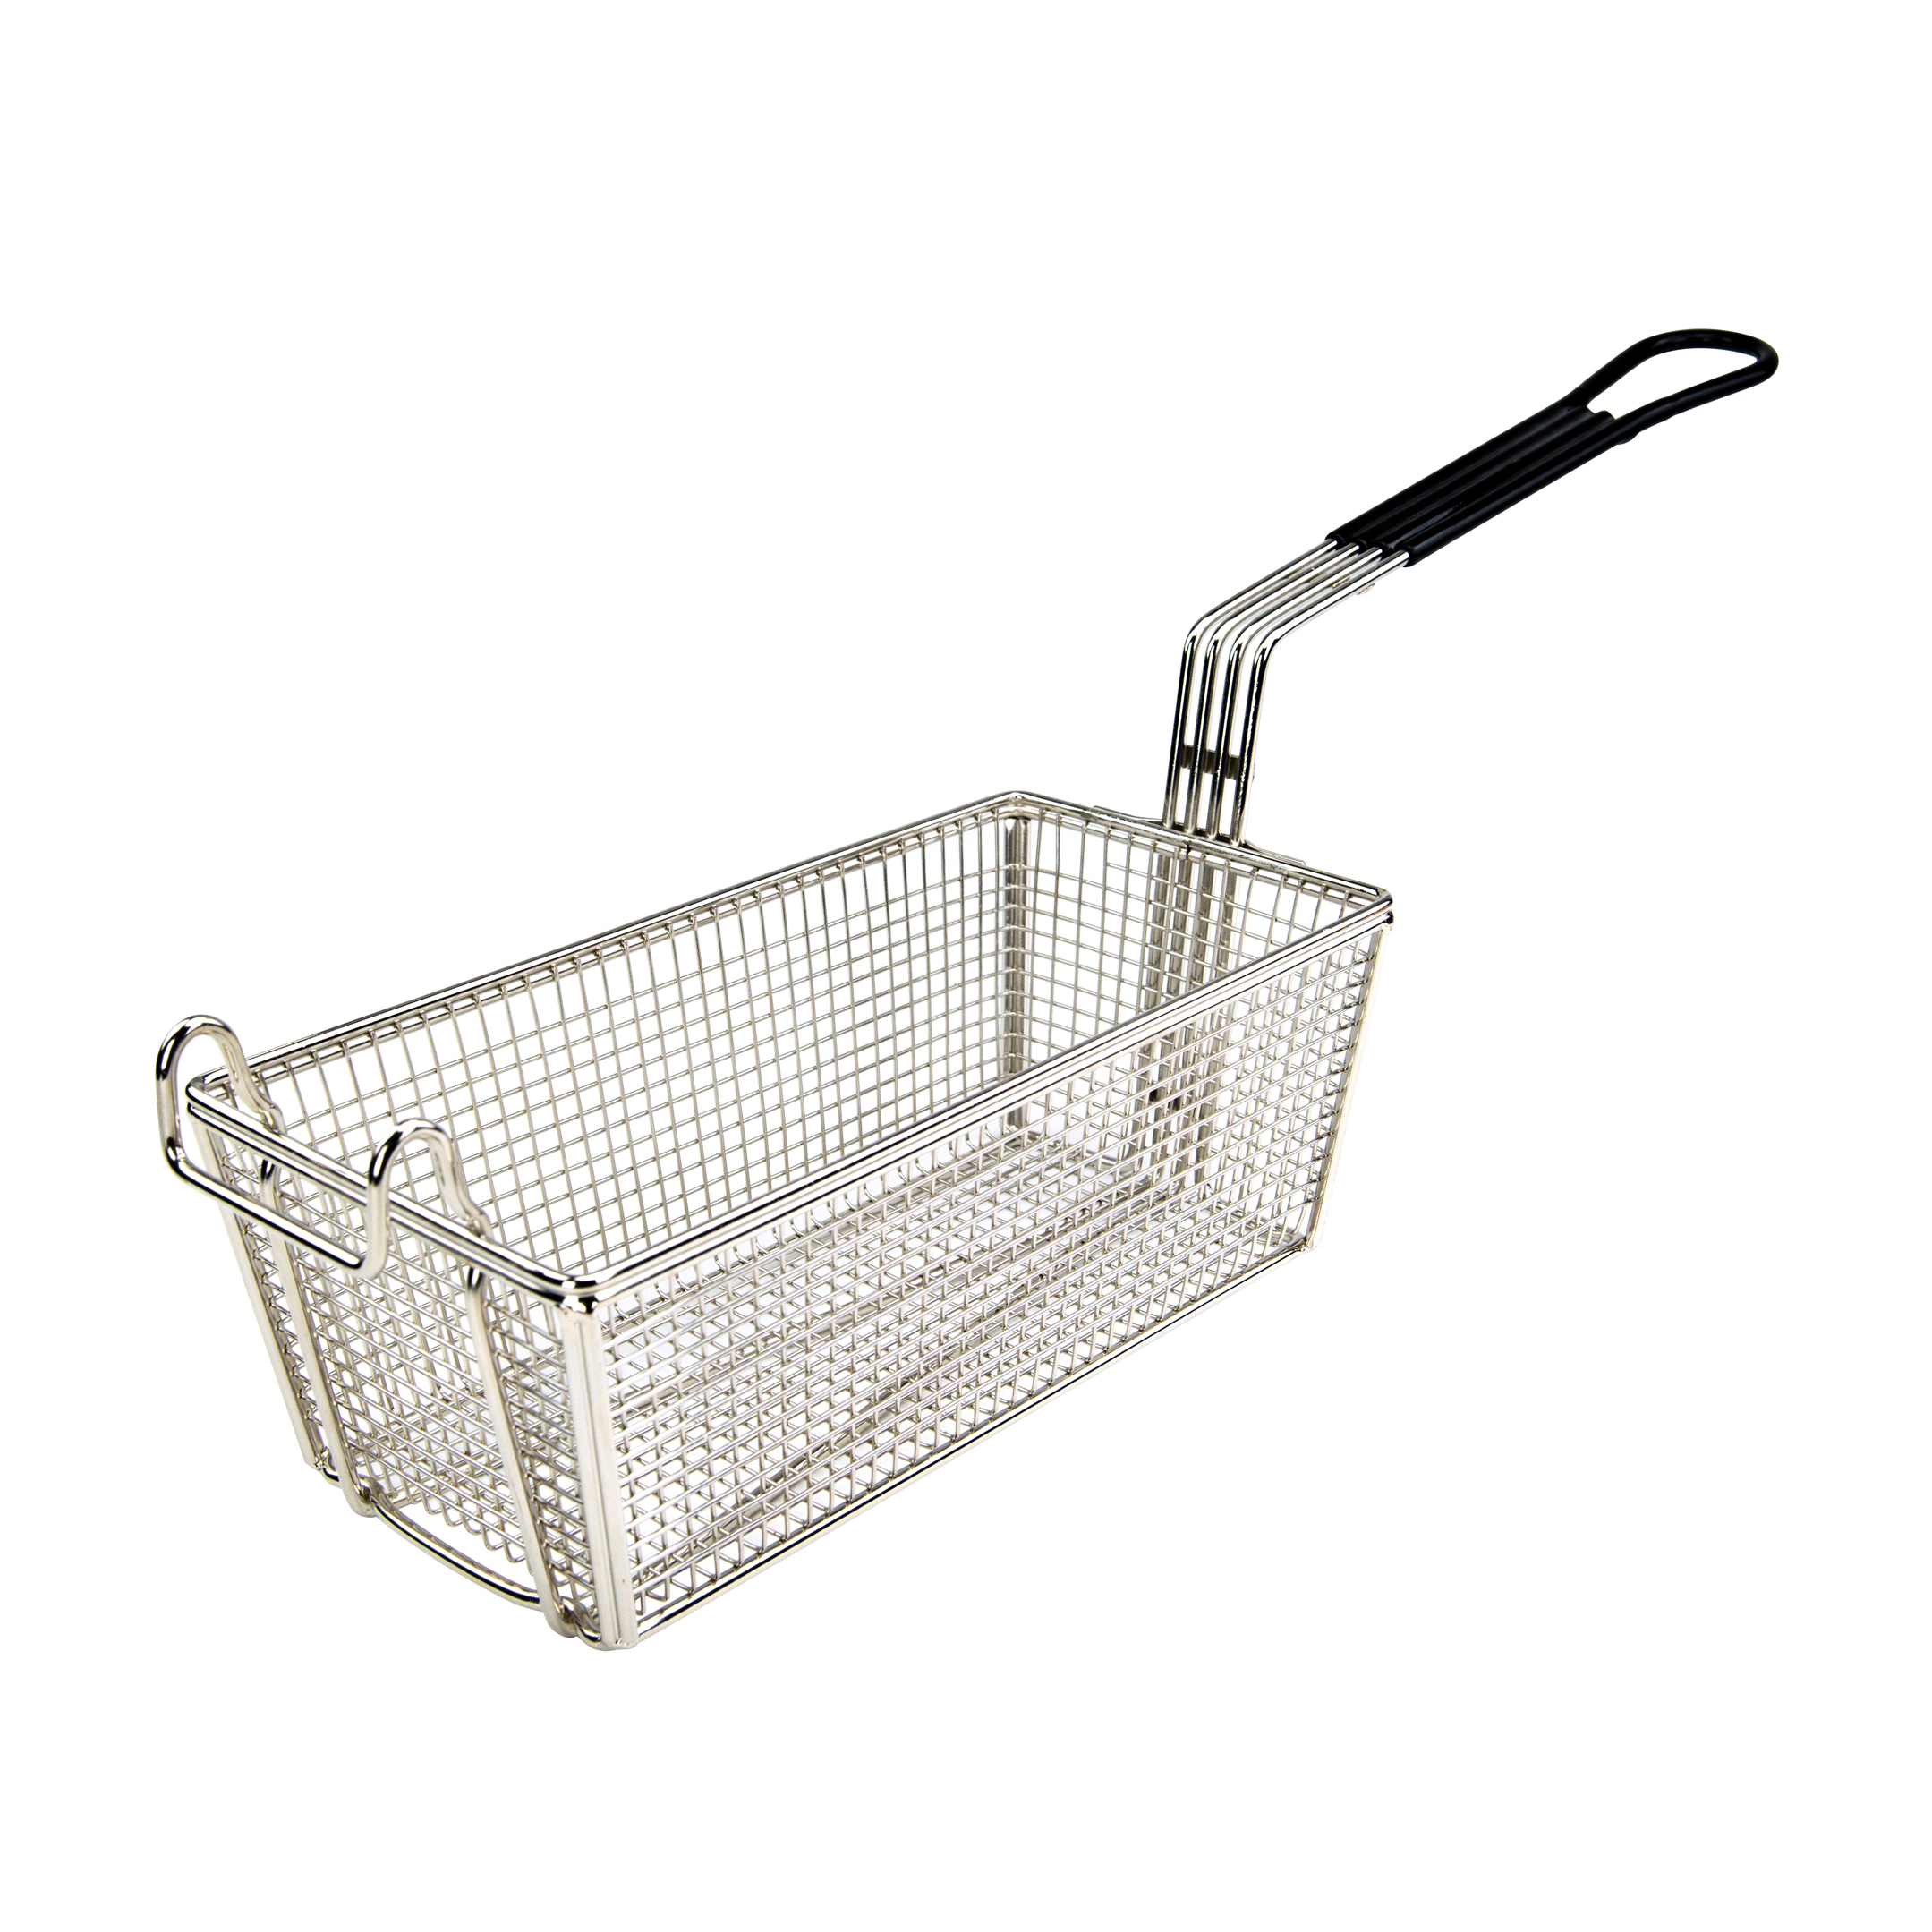 Winco FB-05 fryer basket